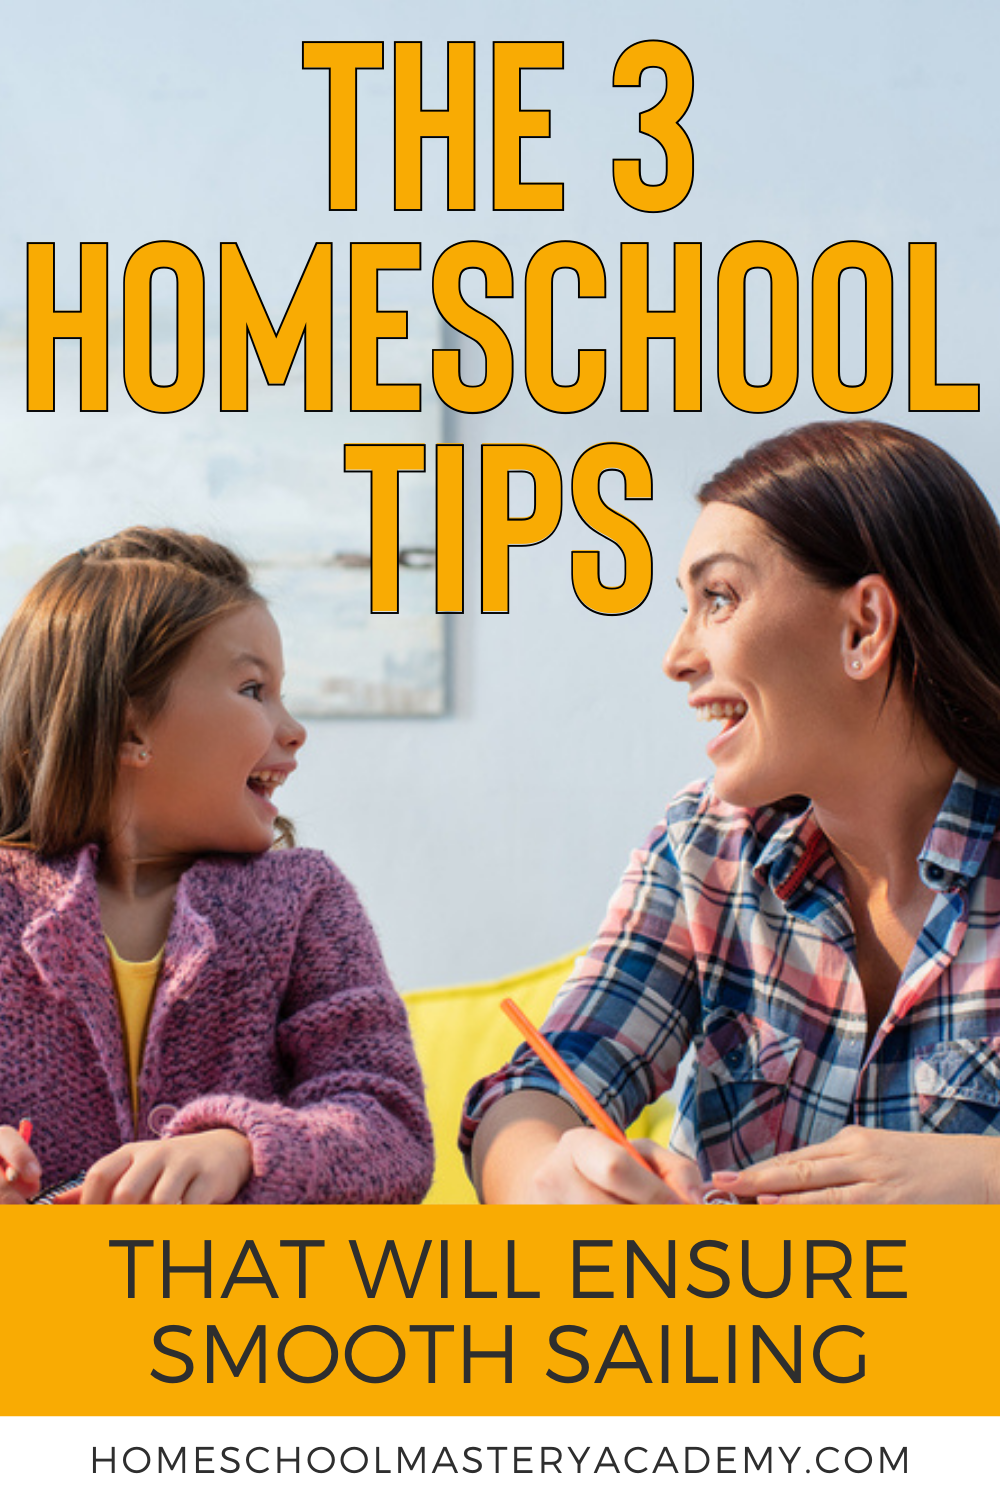 The 3 Homeschool Tips That Will Ensure Smooth Sailing #homeschool #homeschooltips #homeschoolhelp #homeschooling